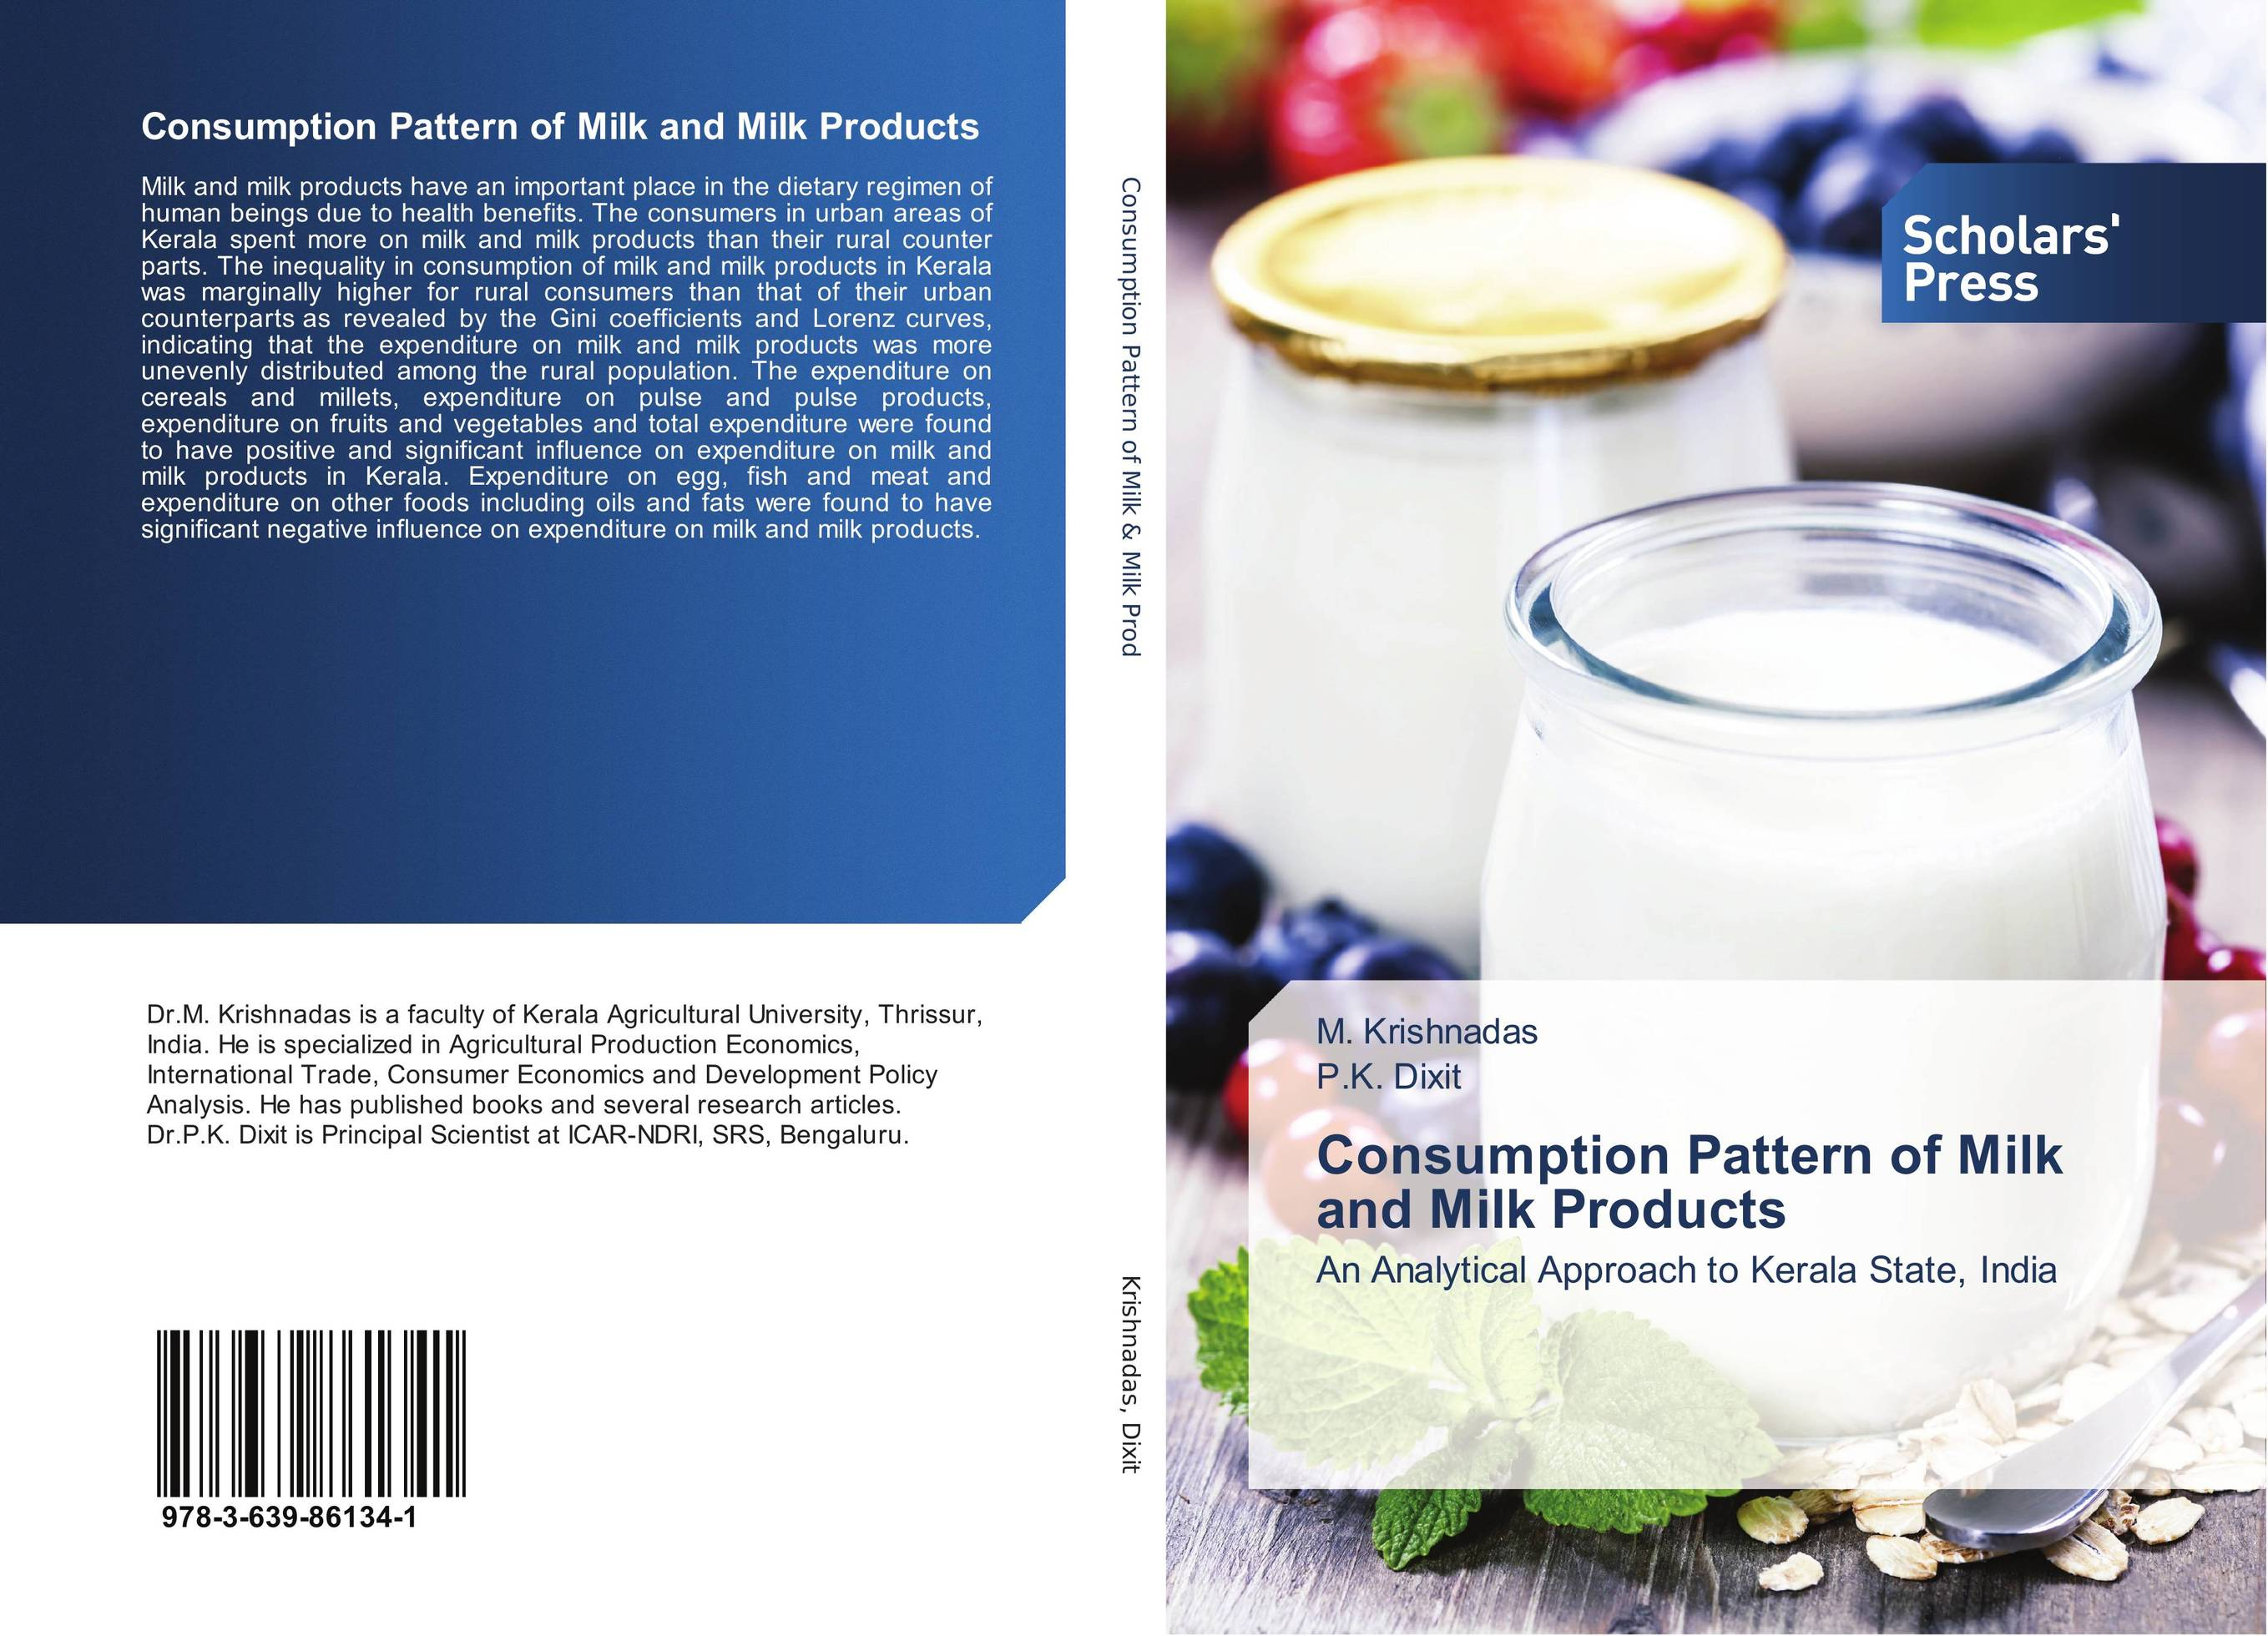 Consumption Pattern of Milk and Milk Products